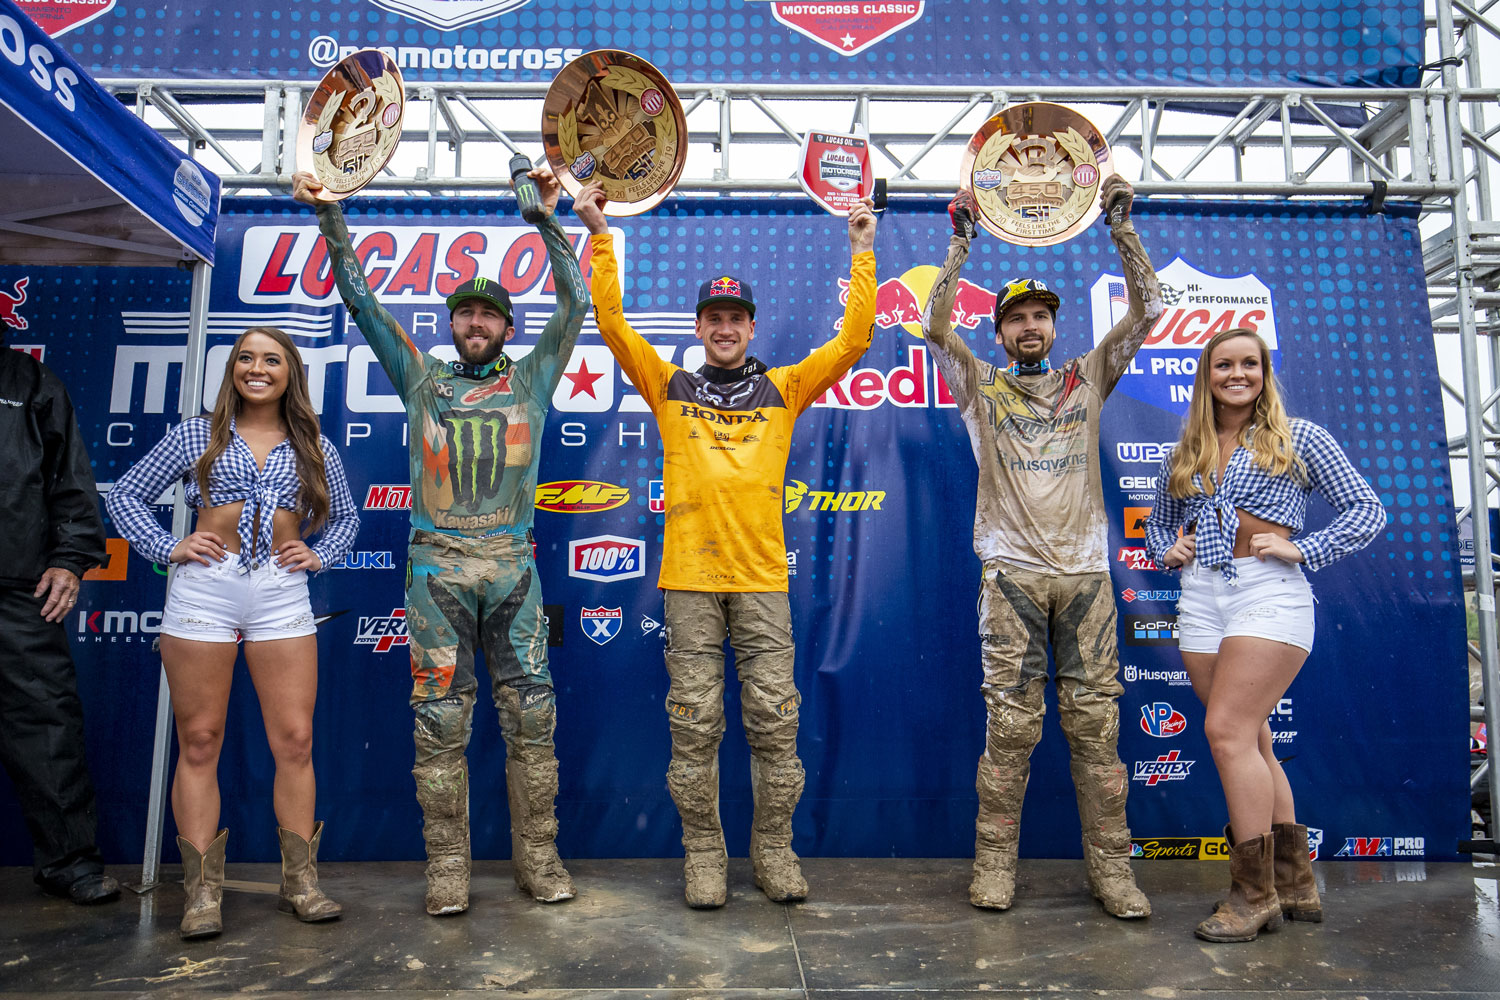 PODIUM_2019_HANGTOWN_MX_web.jpg